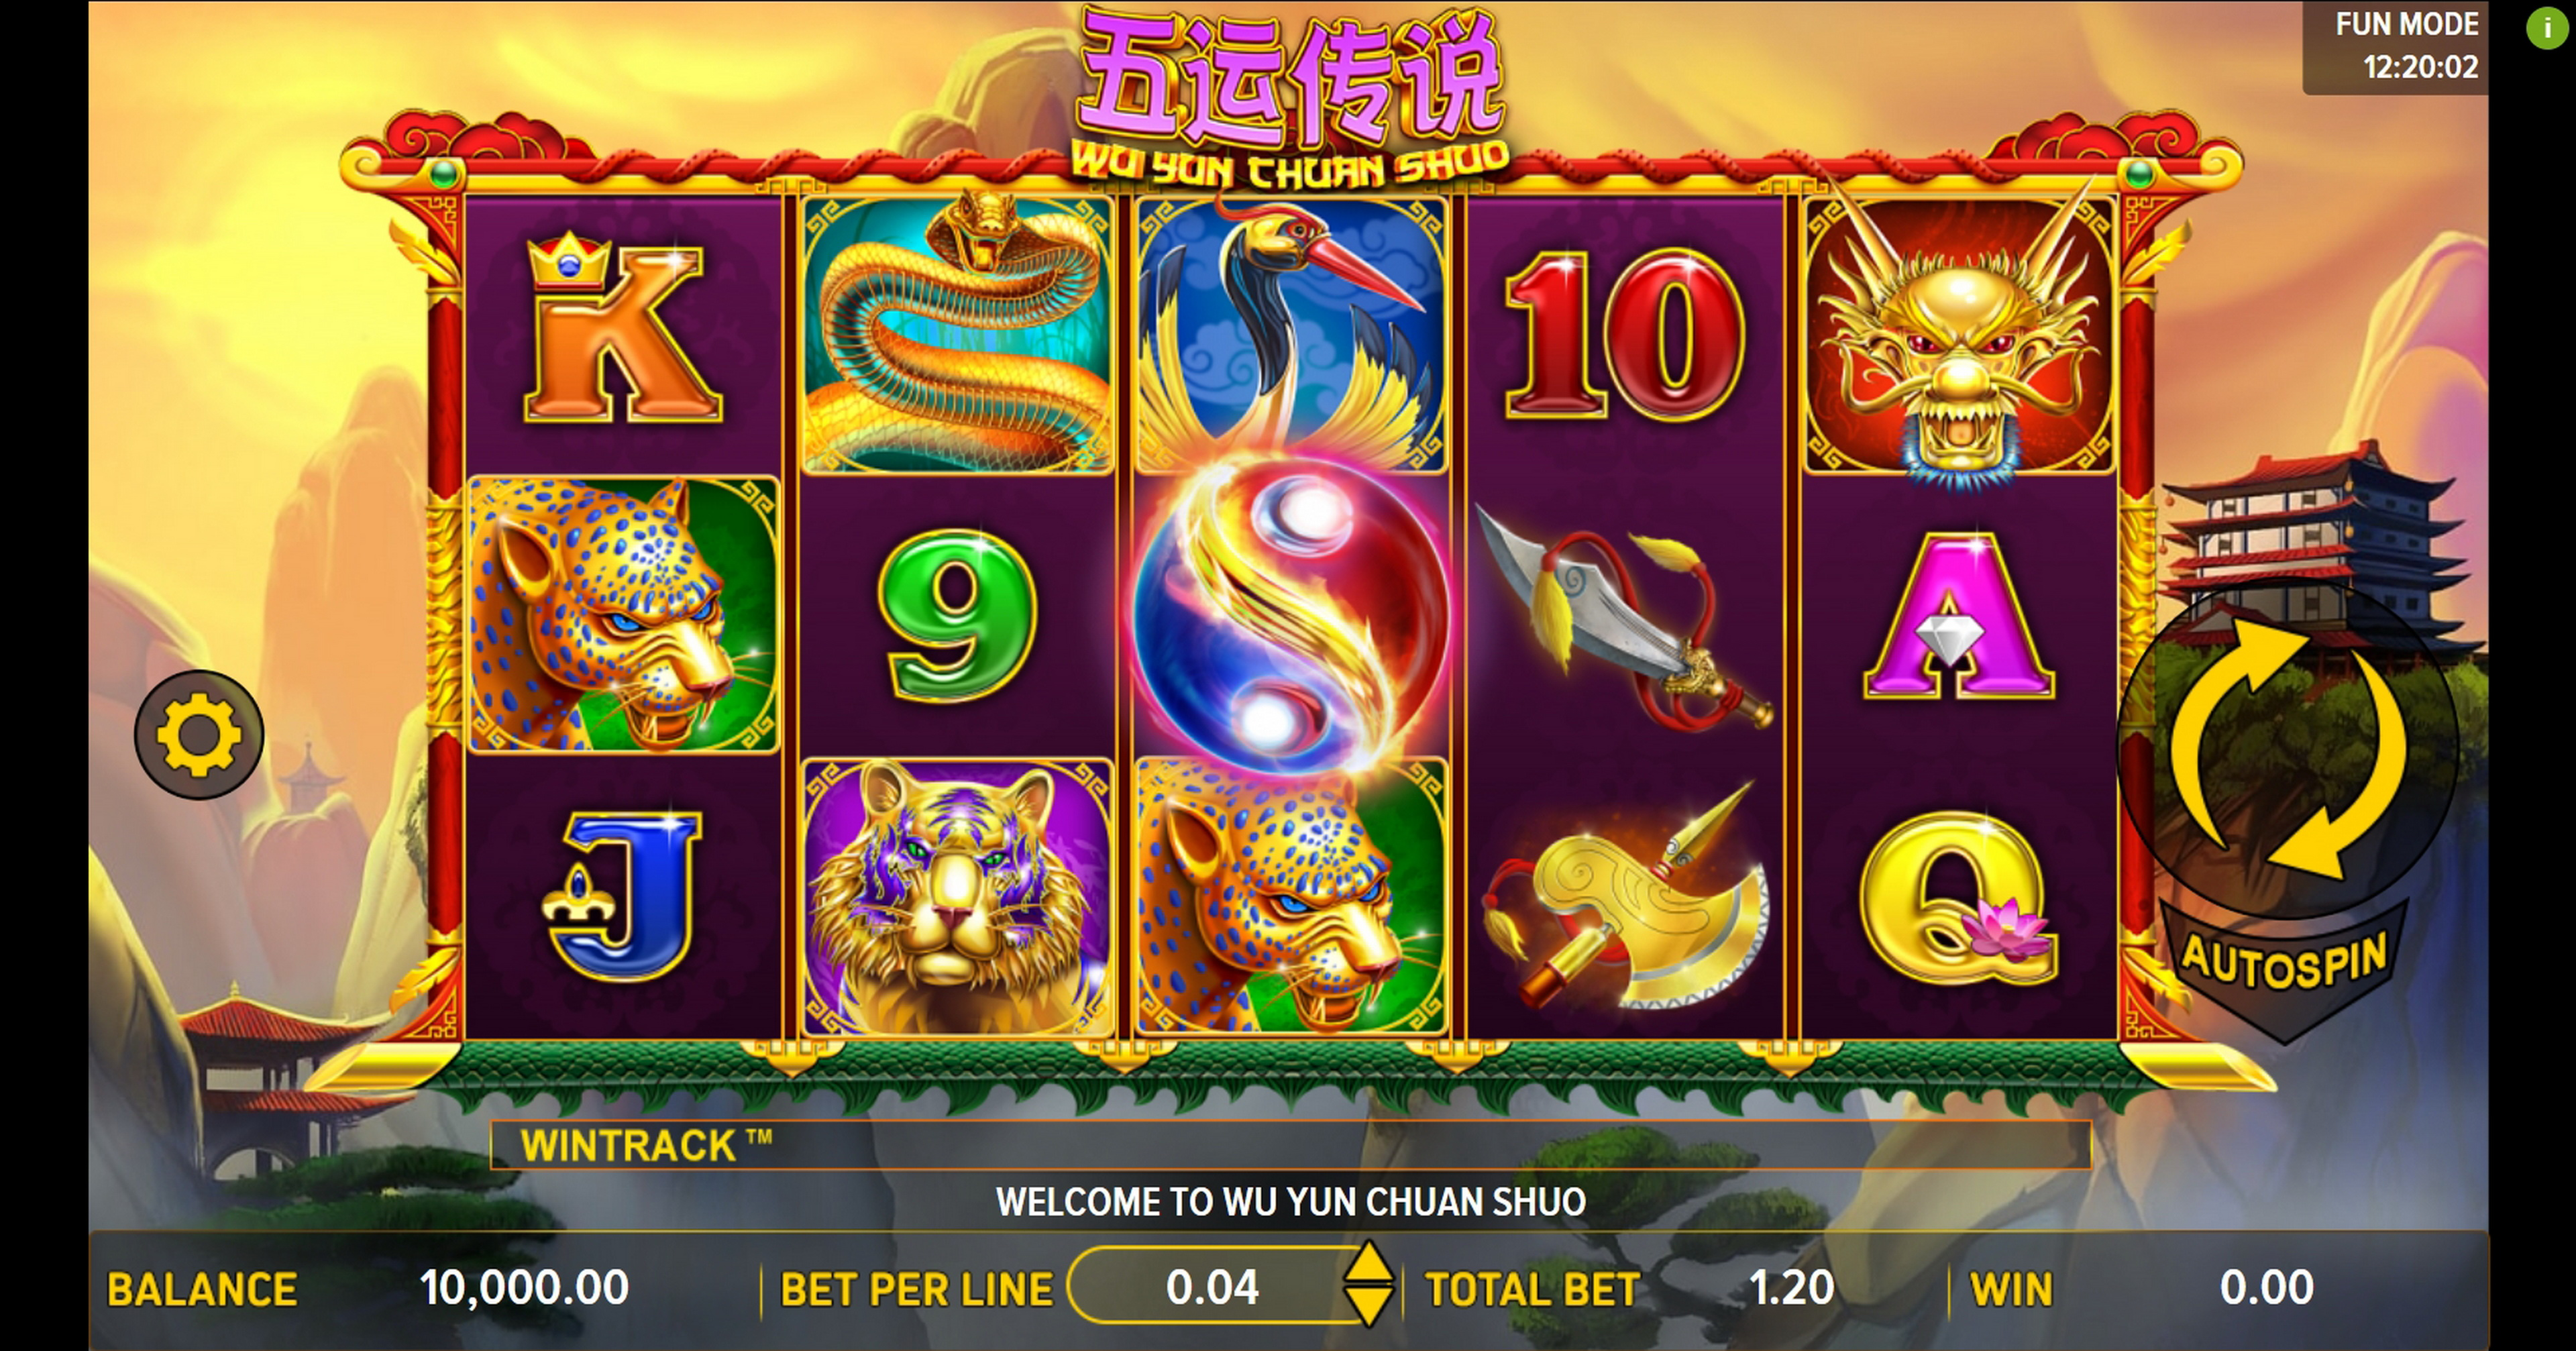 Reels in Wu Yun Thuan Shuo Slot Game by Aspect Gaming